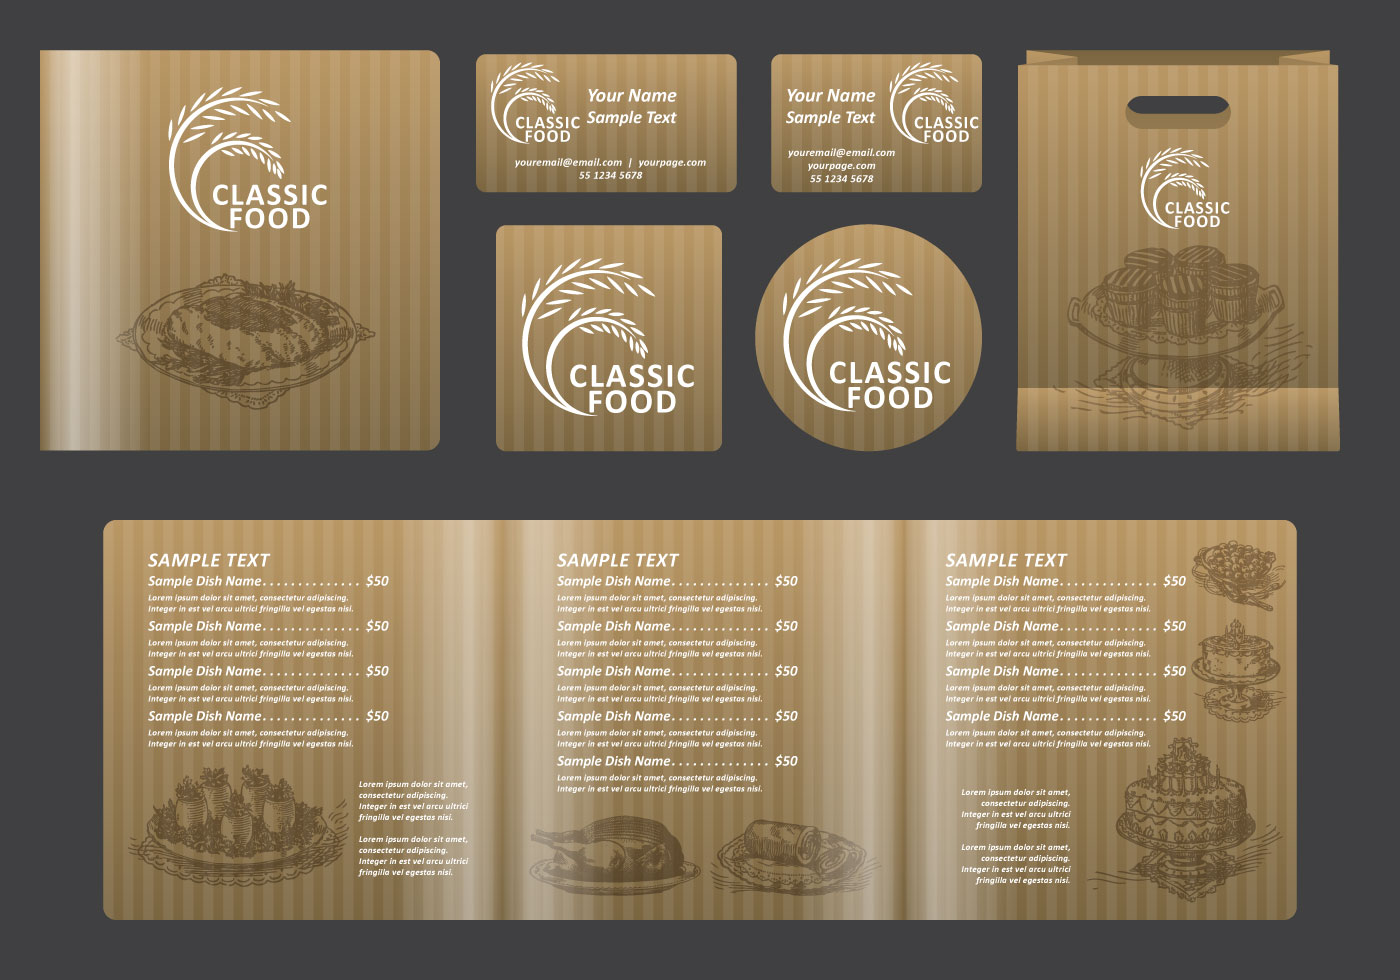 Restaurant Menu Design - (2106 Free Downloads)